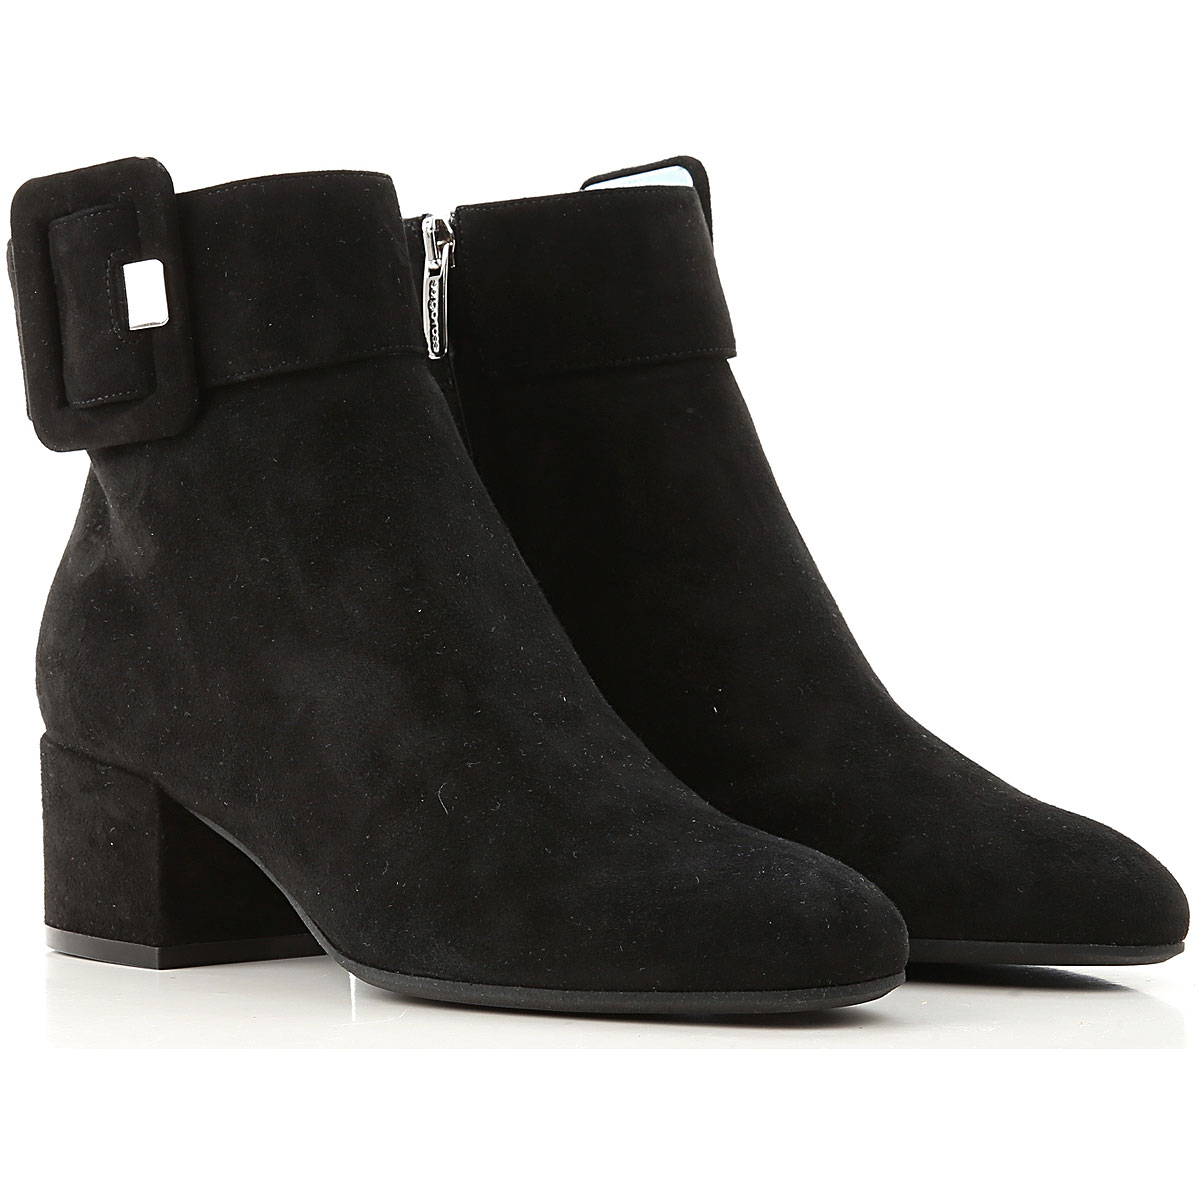 Sergio Rossi Boots for Women, Booties On Sale, Black, Suede leather, 2019, 10 11 6 7 8 9